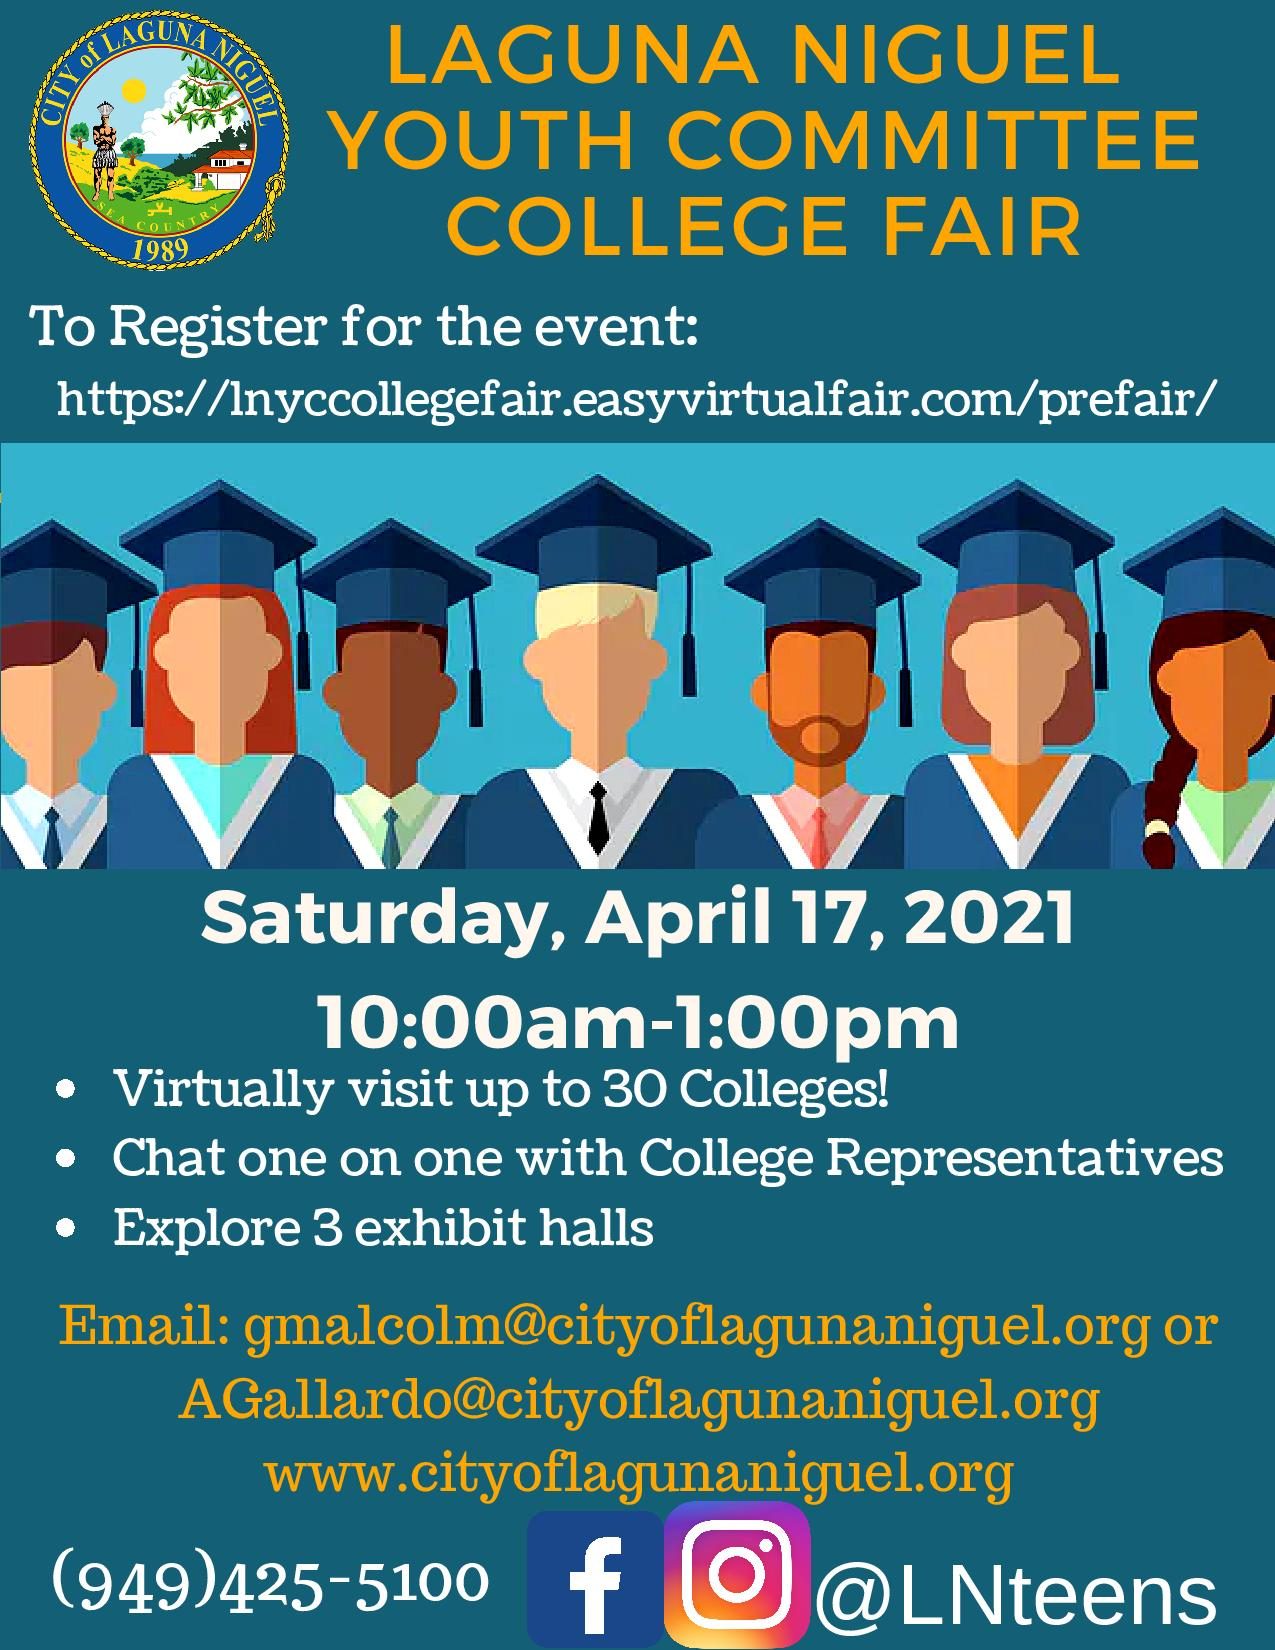 Laguna Niguel Youth Committee College Fair Flyer